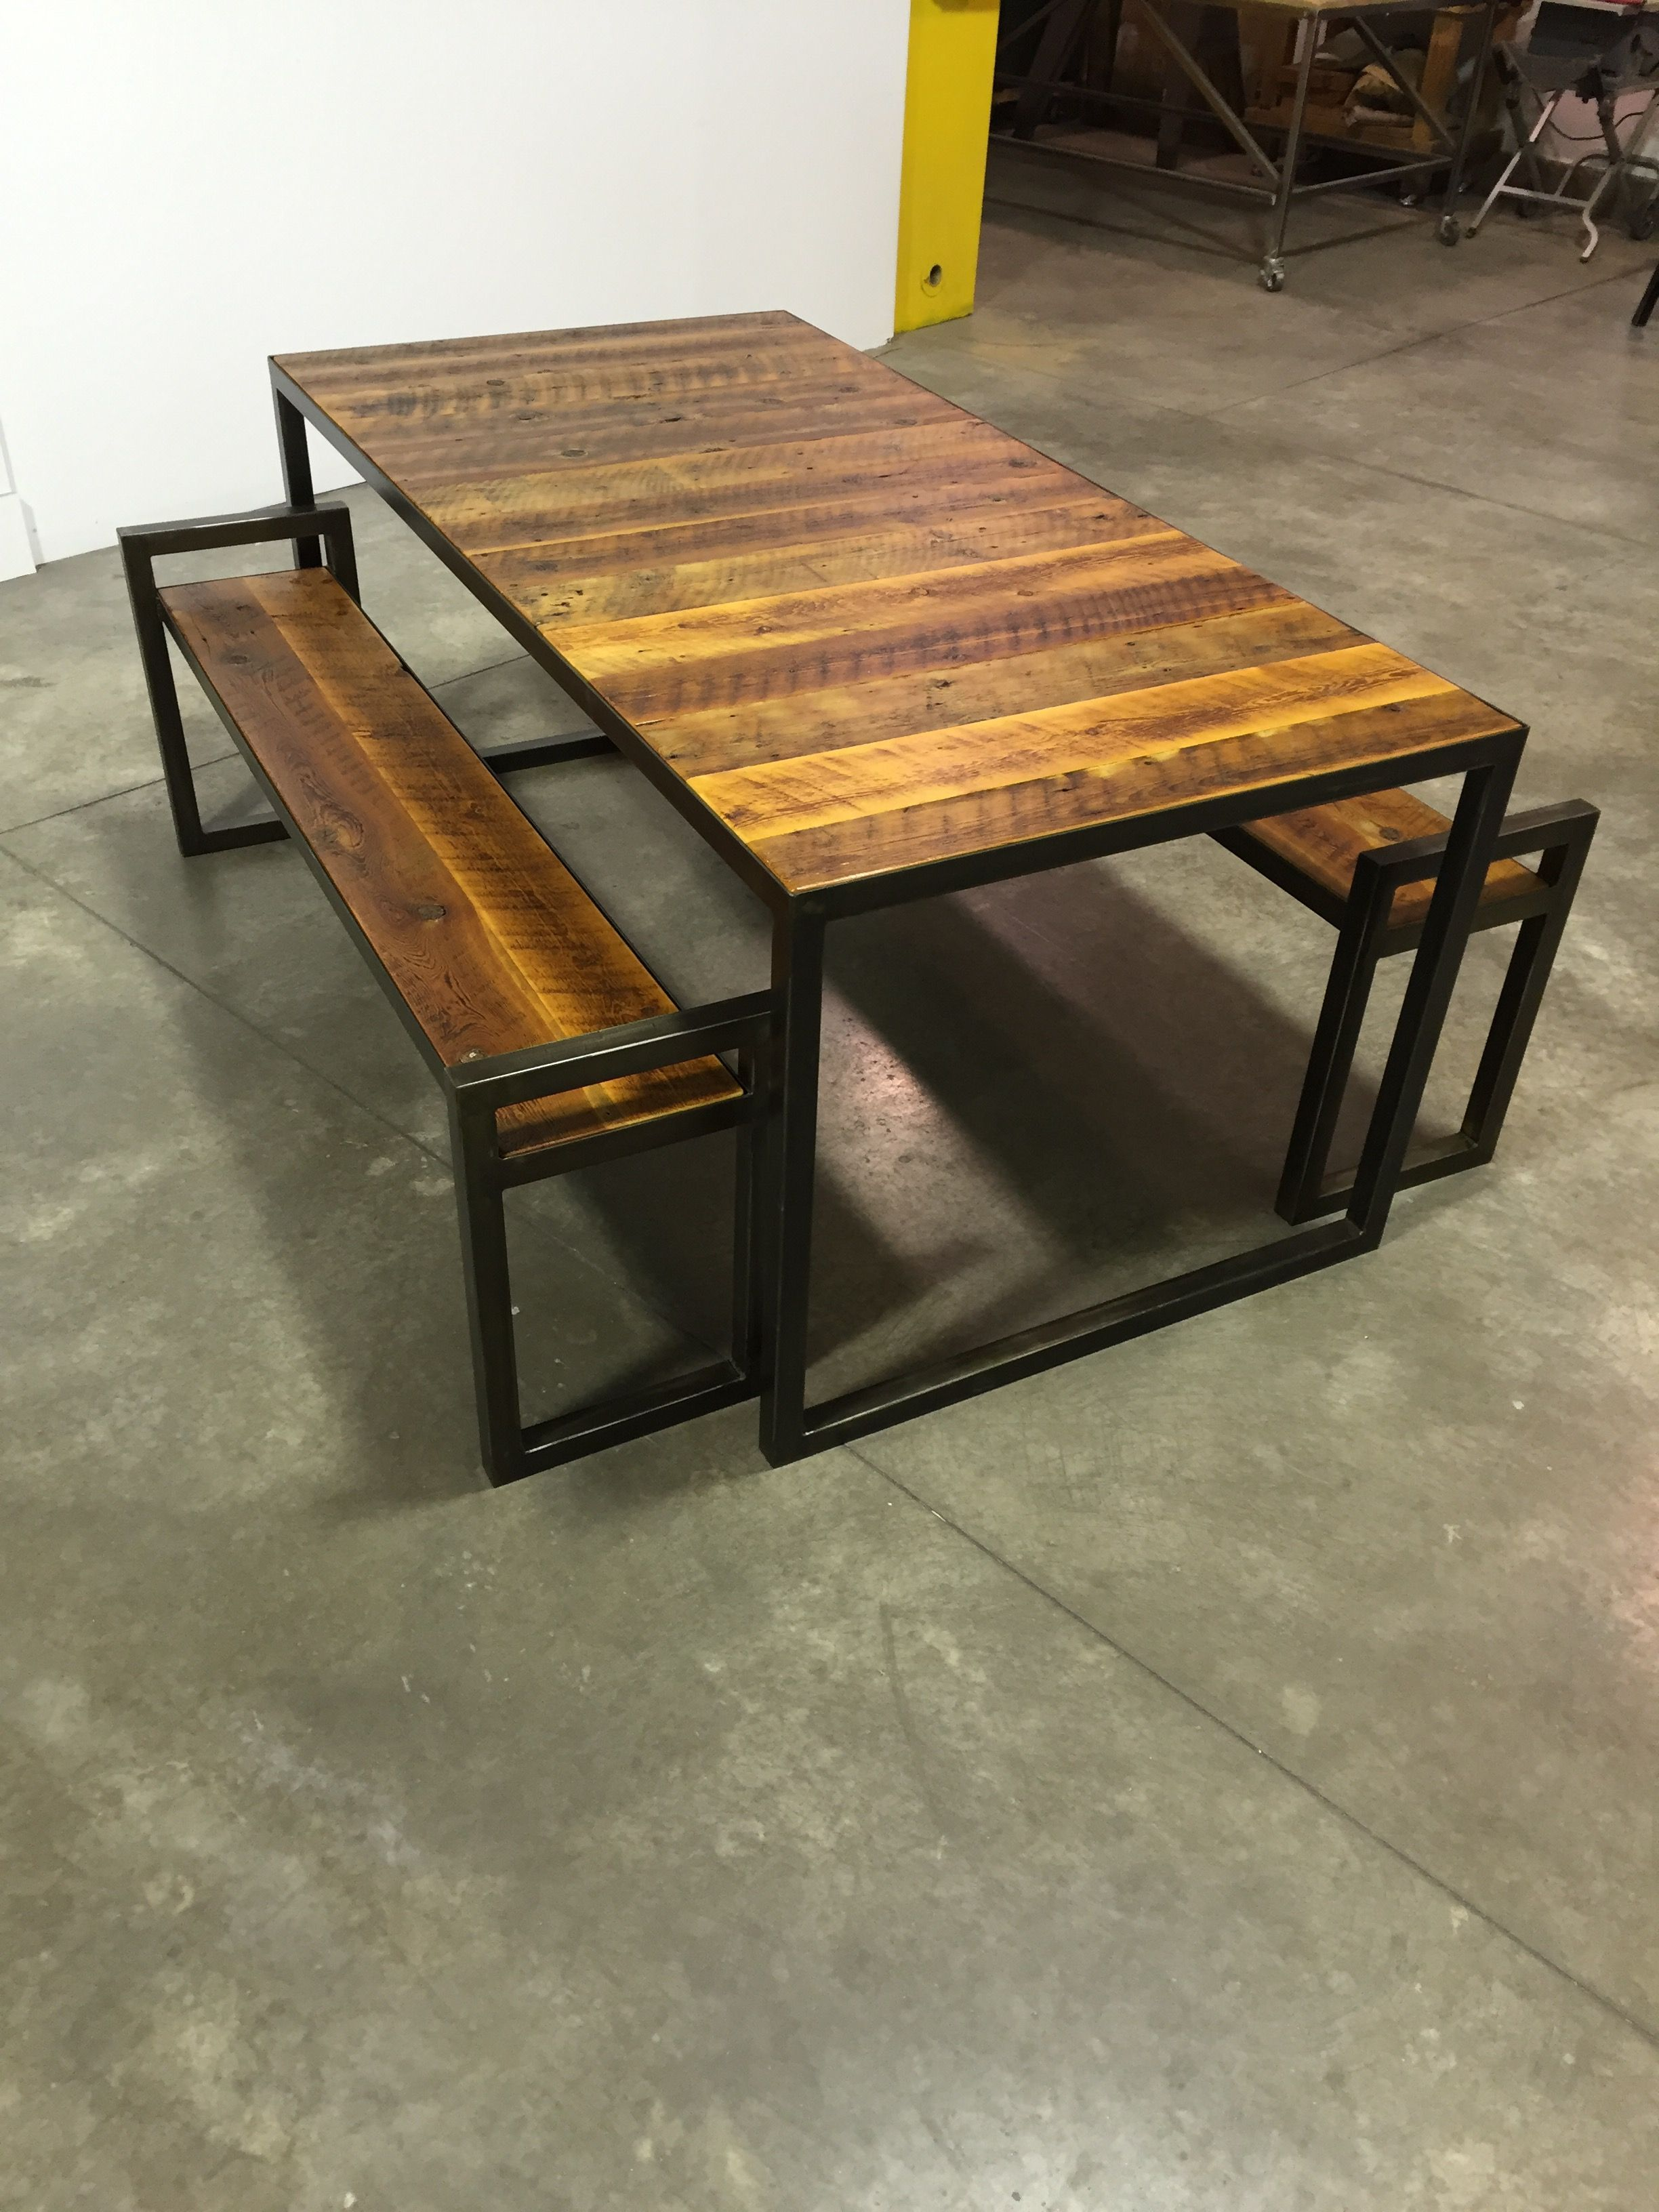 Reclaimed Montana Barn Wood Patio Table Set Steel Frame With Distressed Black Patina